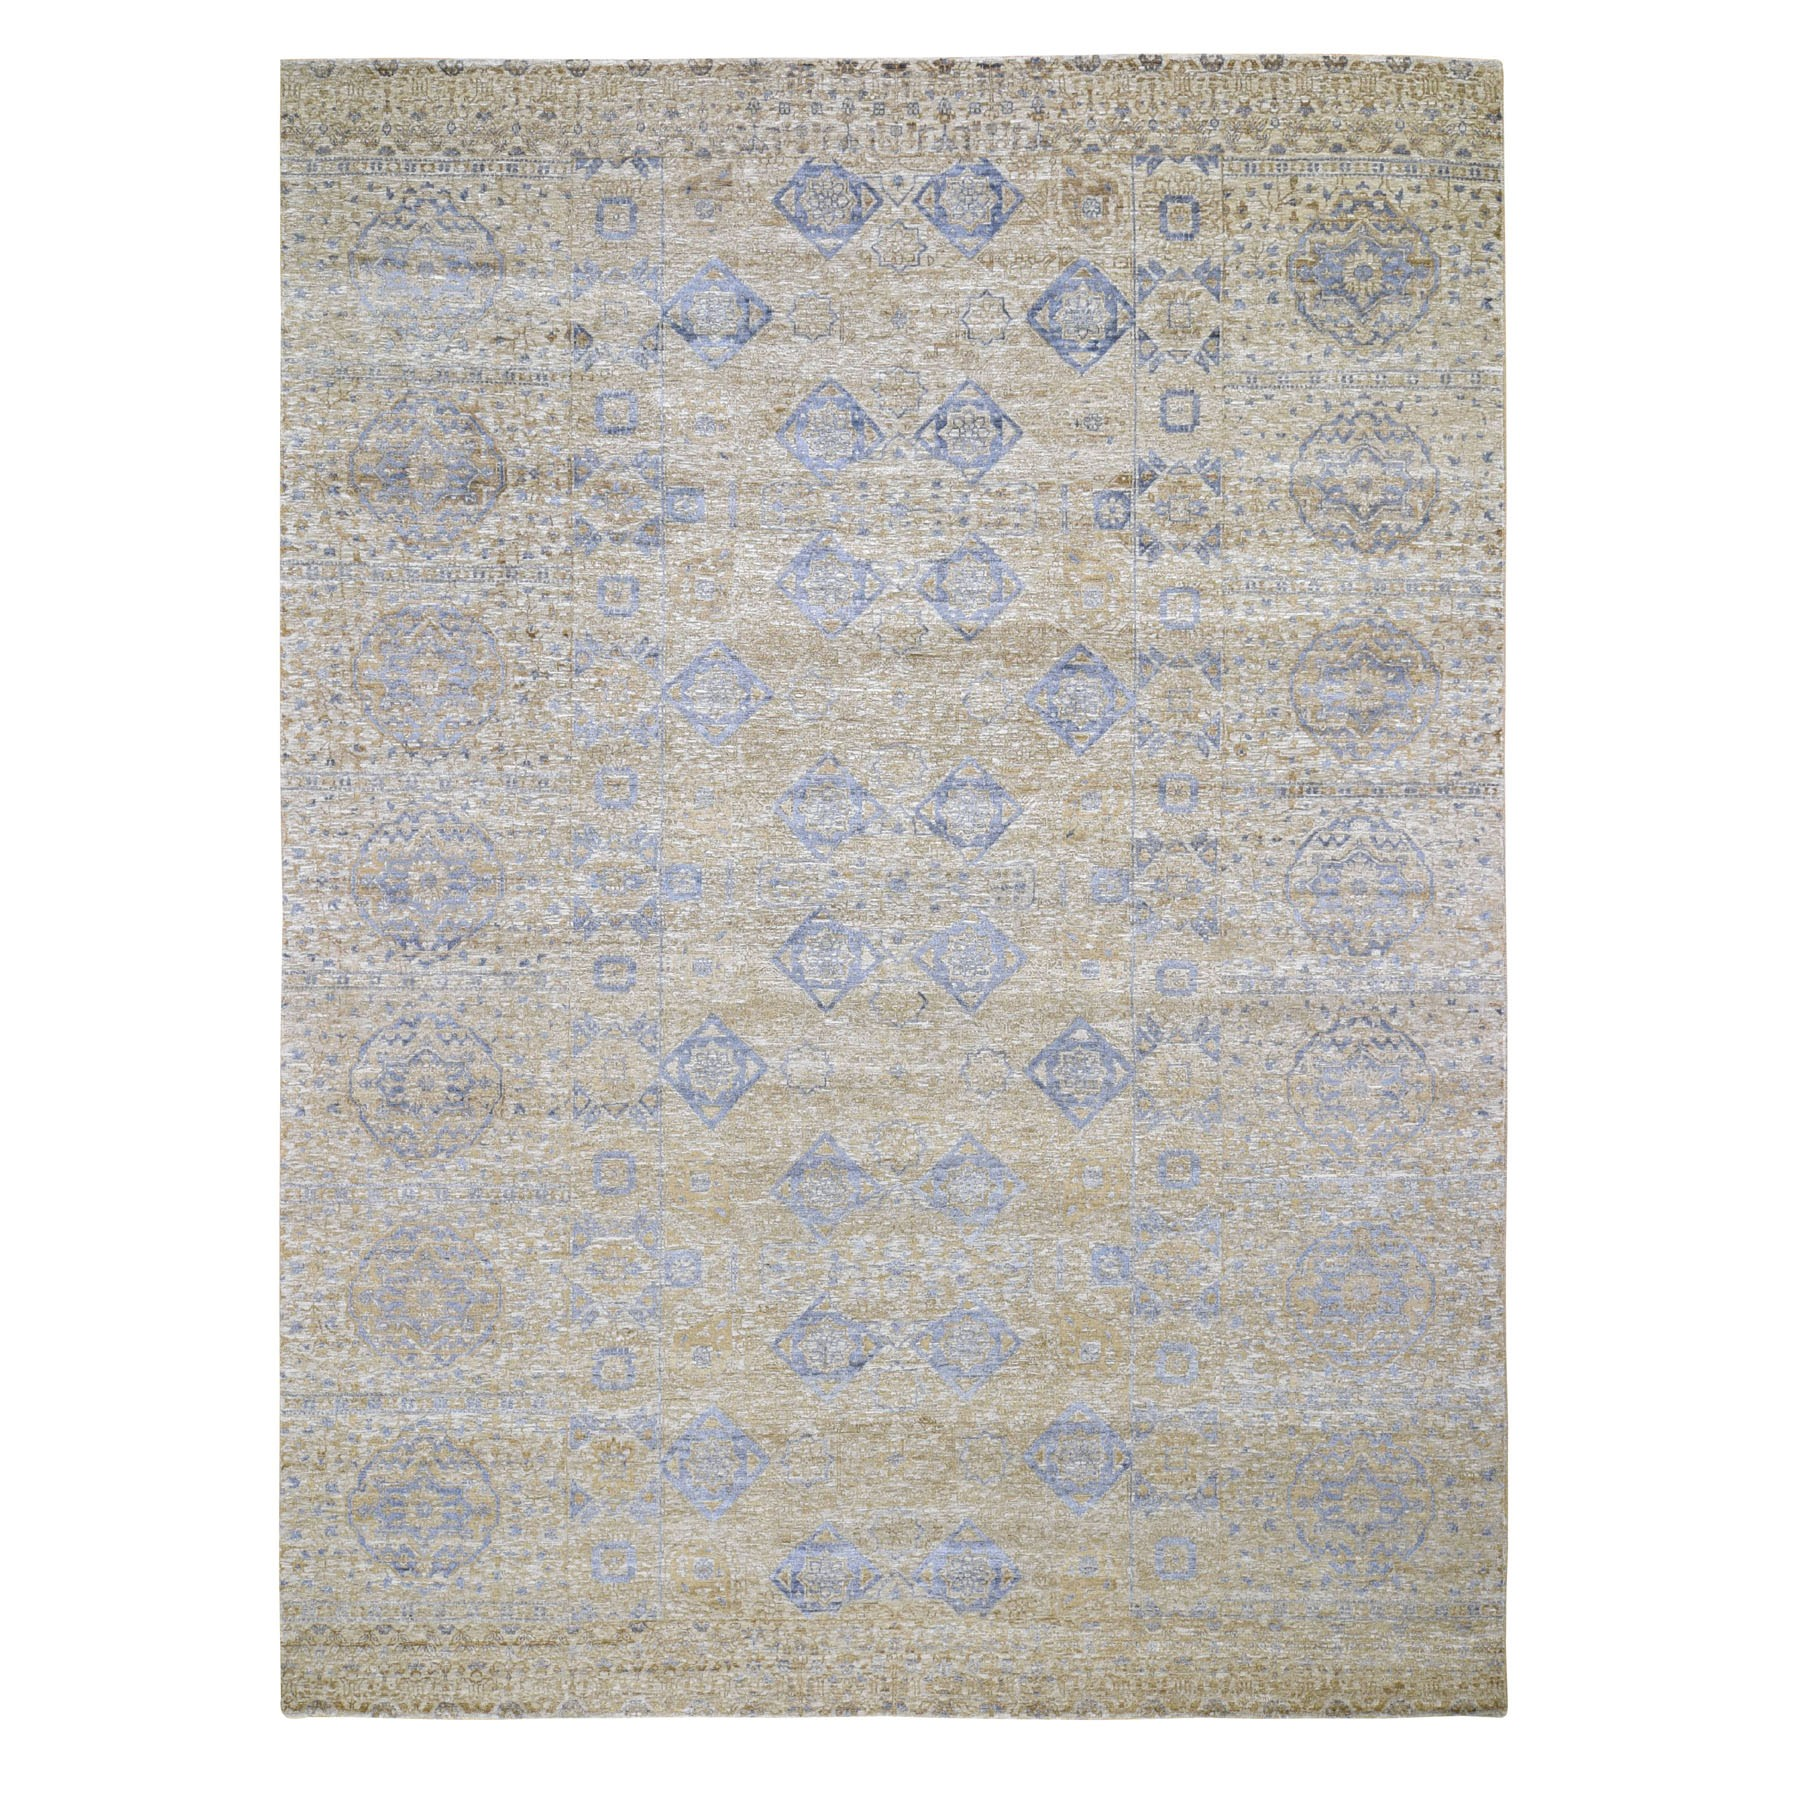 "9'x12'2"" Silk With Textured wool Mamluk Design Hand knotted Oriental Rug"